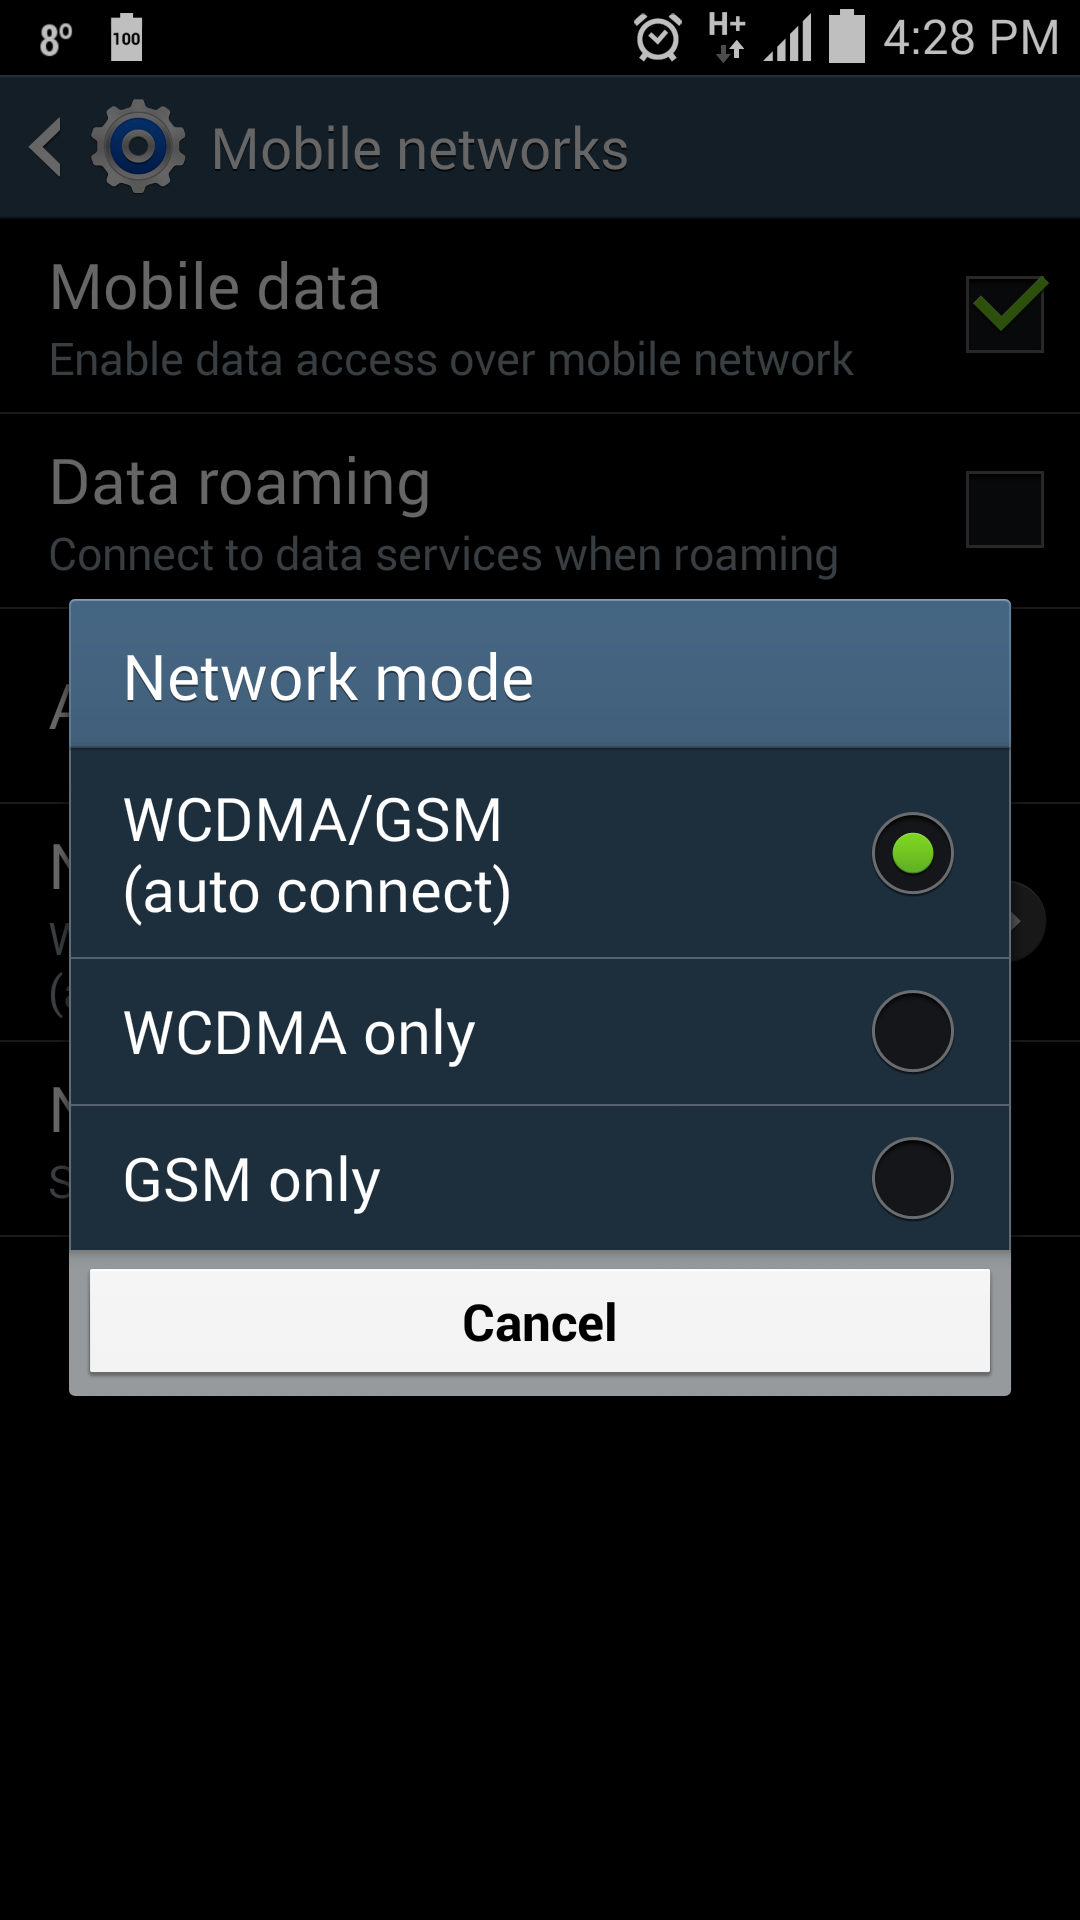 Uk my galaxy s4 never shows 4g symbol in 4g area android neowin share this post biocorpaavc Images